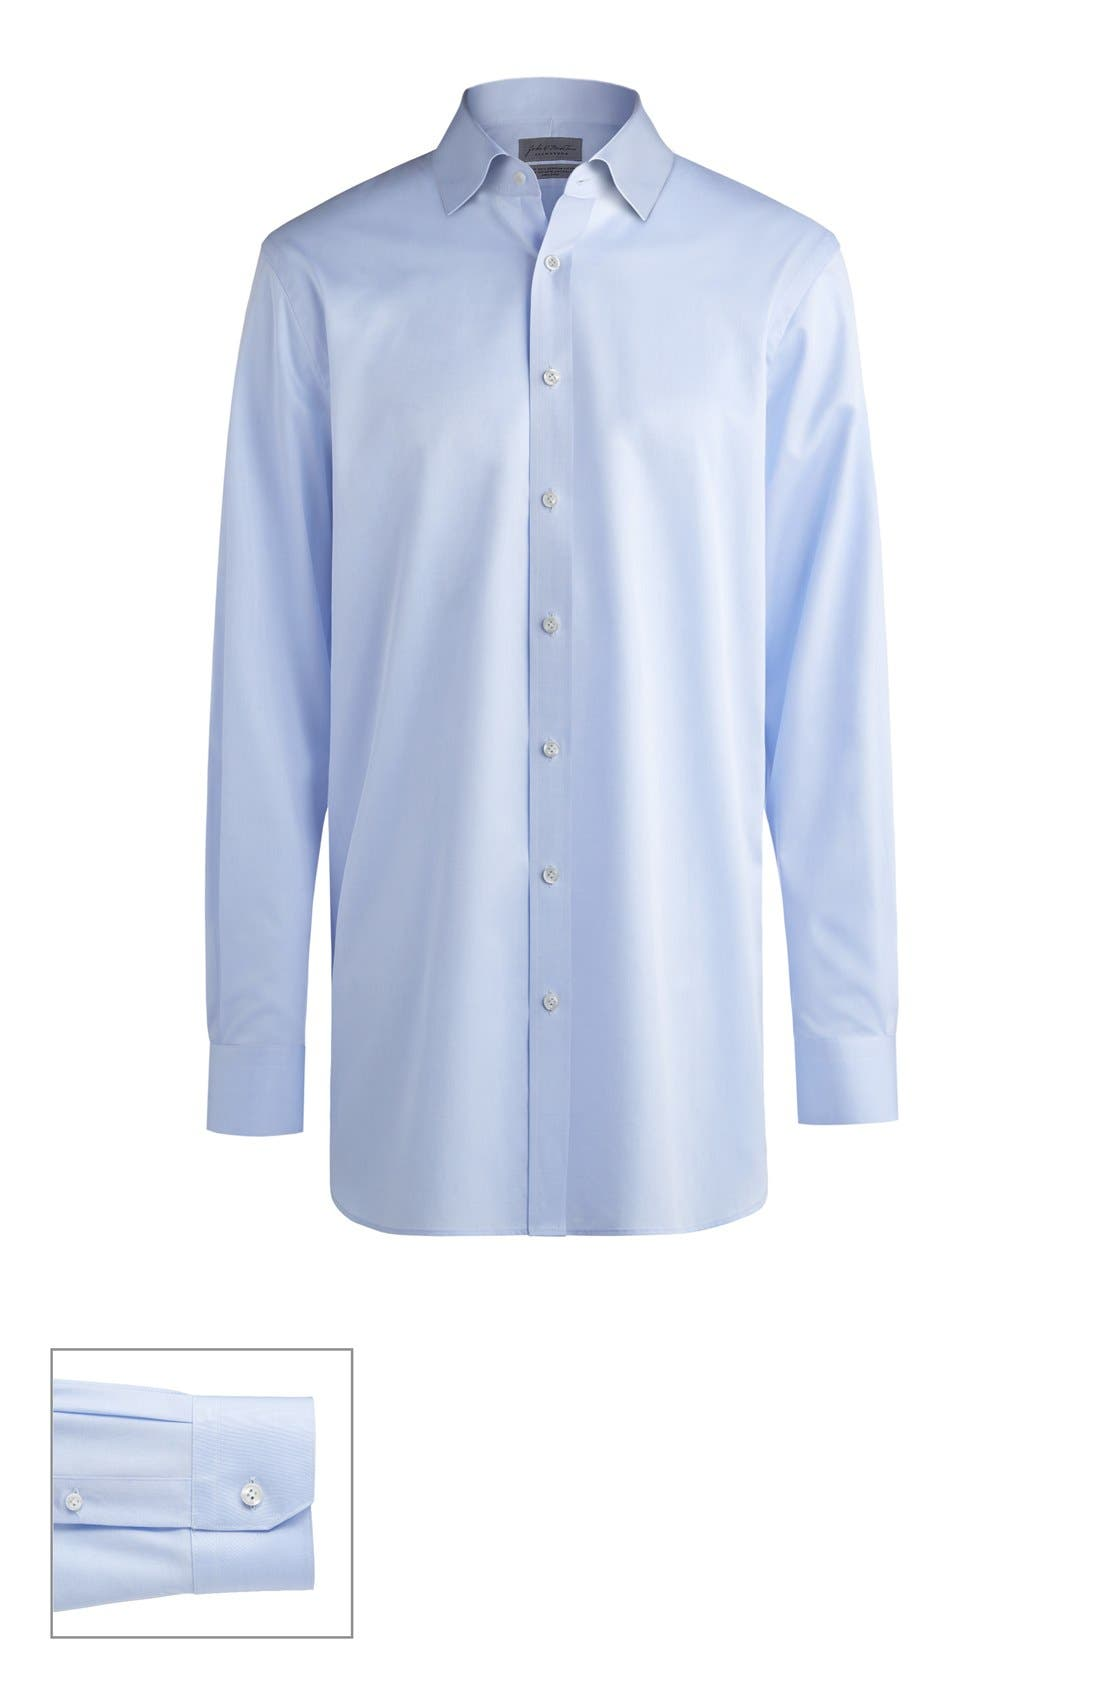 Made to Measure Extra Trim Fit Spread Collar Solid Dress Shirt,                             Main thumbnail 1, color,                             BLUE TWILL